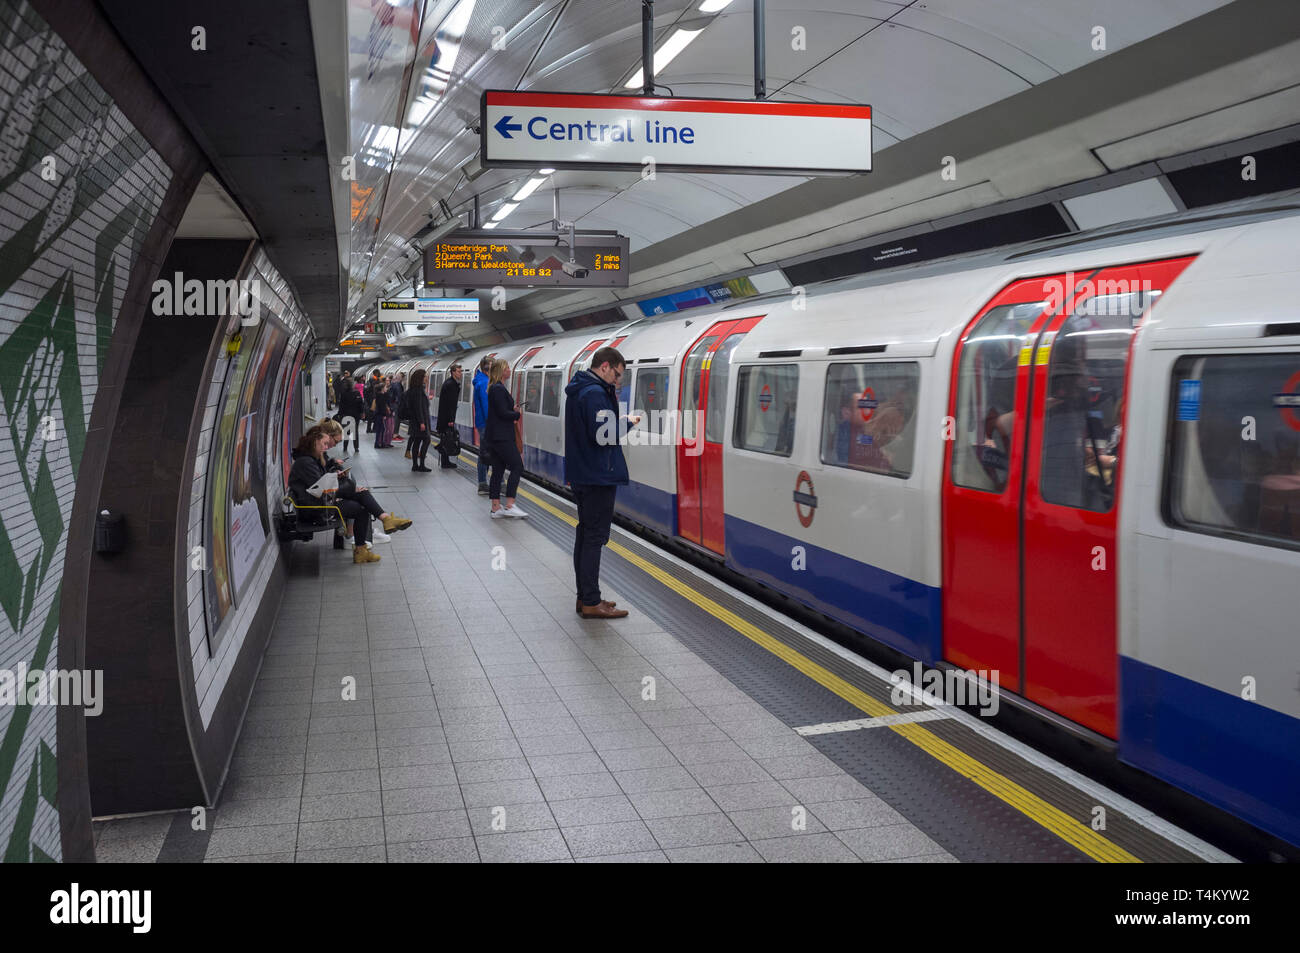 Commuters wait on the platform to get on to a Central Line tube at Waterloo Tube Station, London Stock Photo